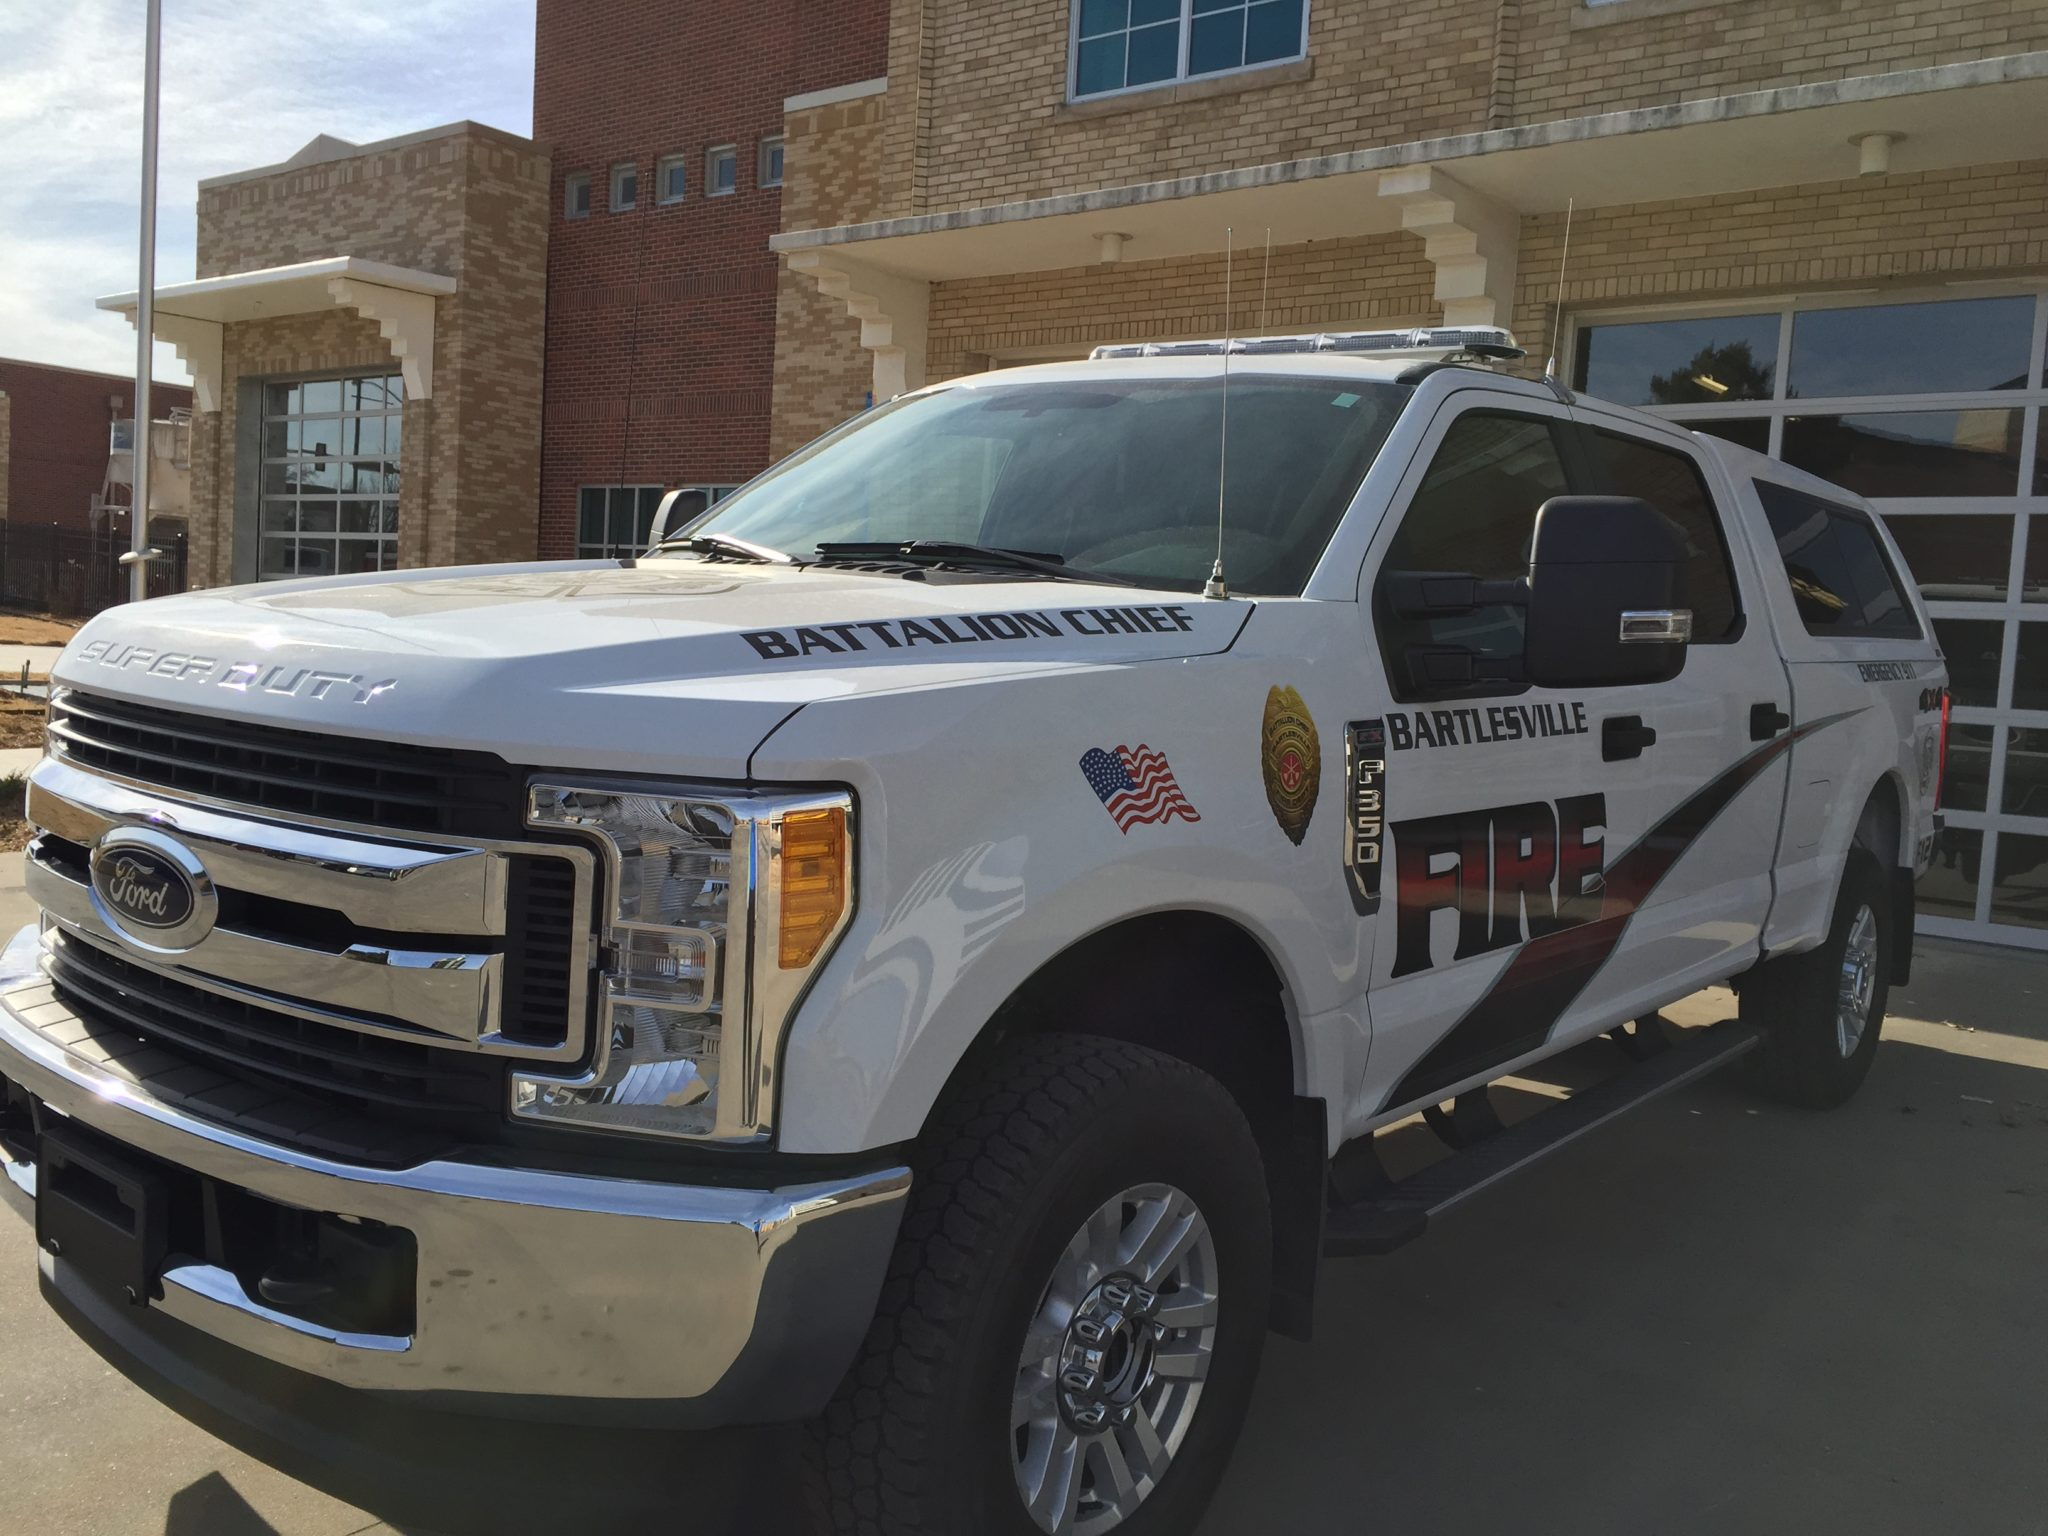 Fire Department Command Vehicle Purchased With Cip Funds